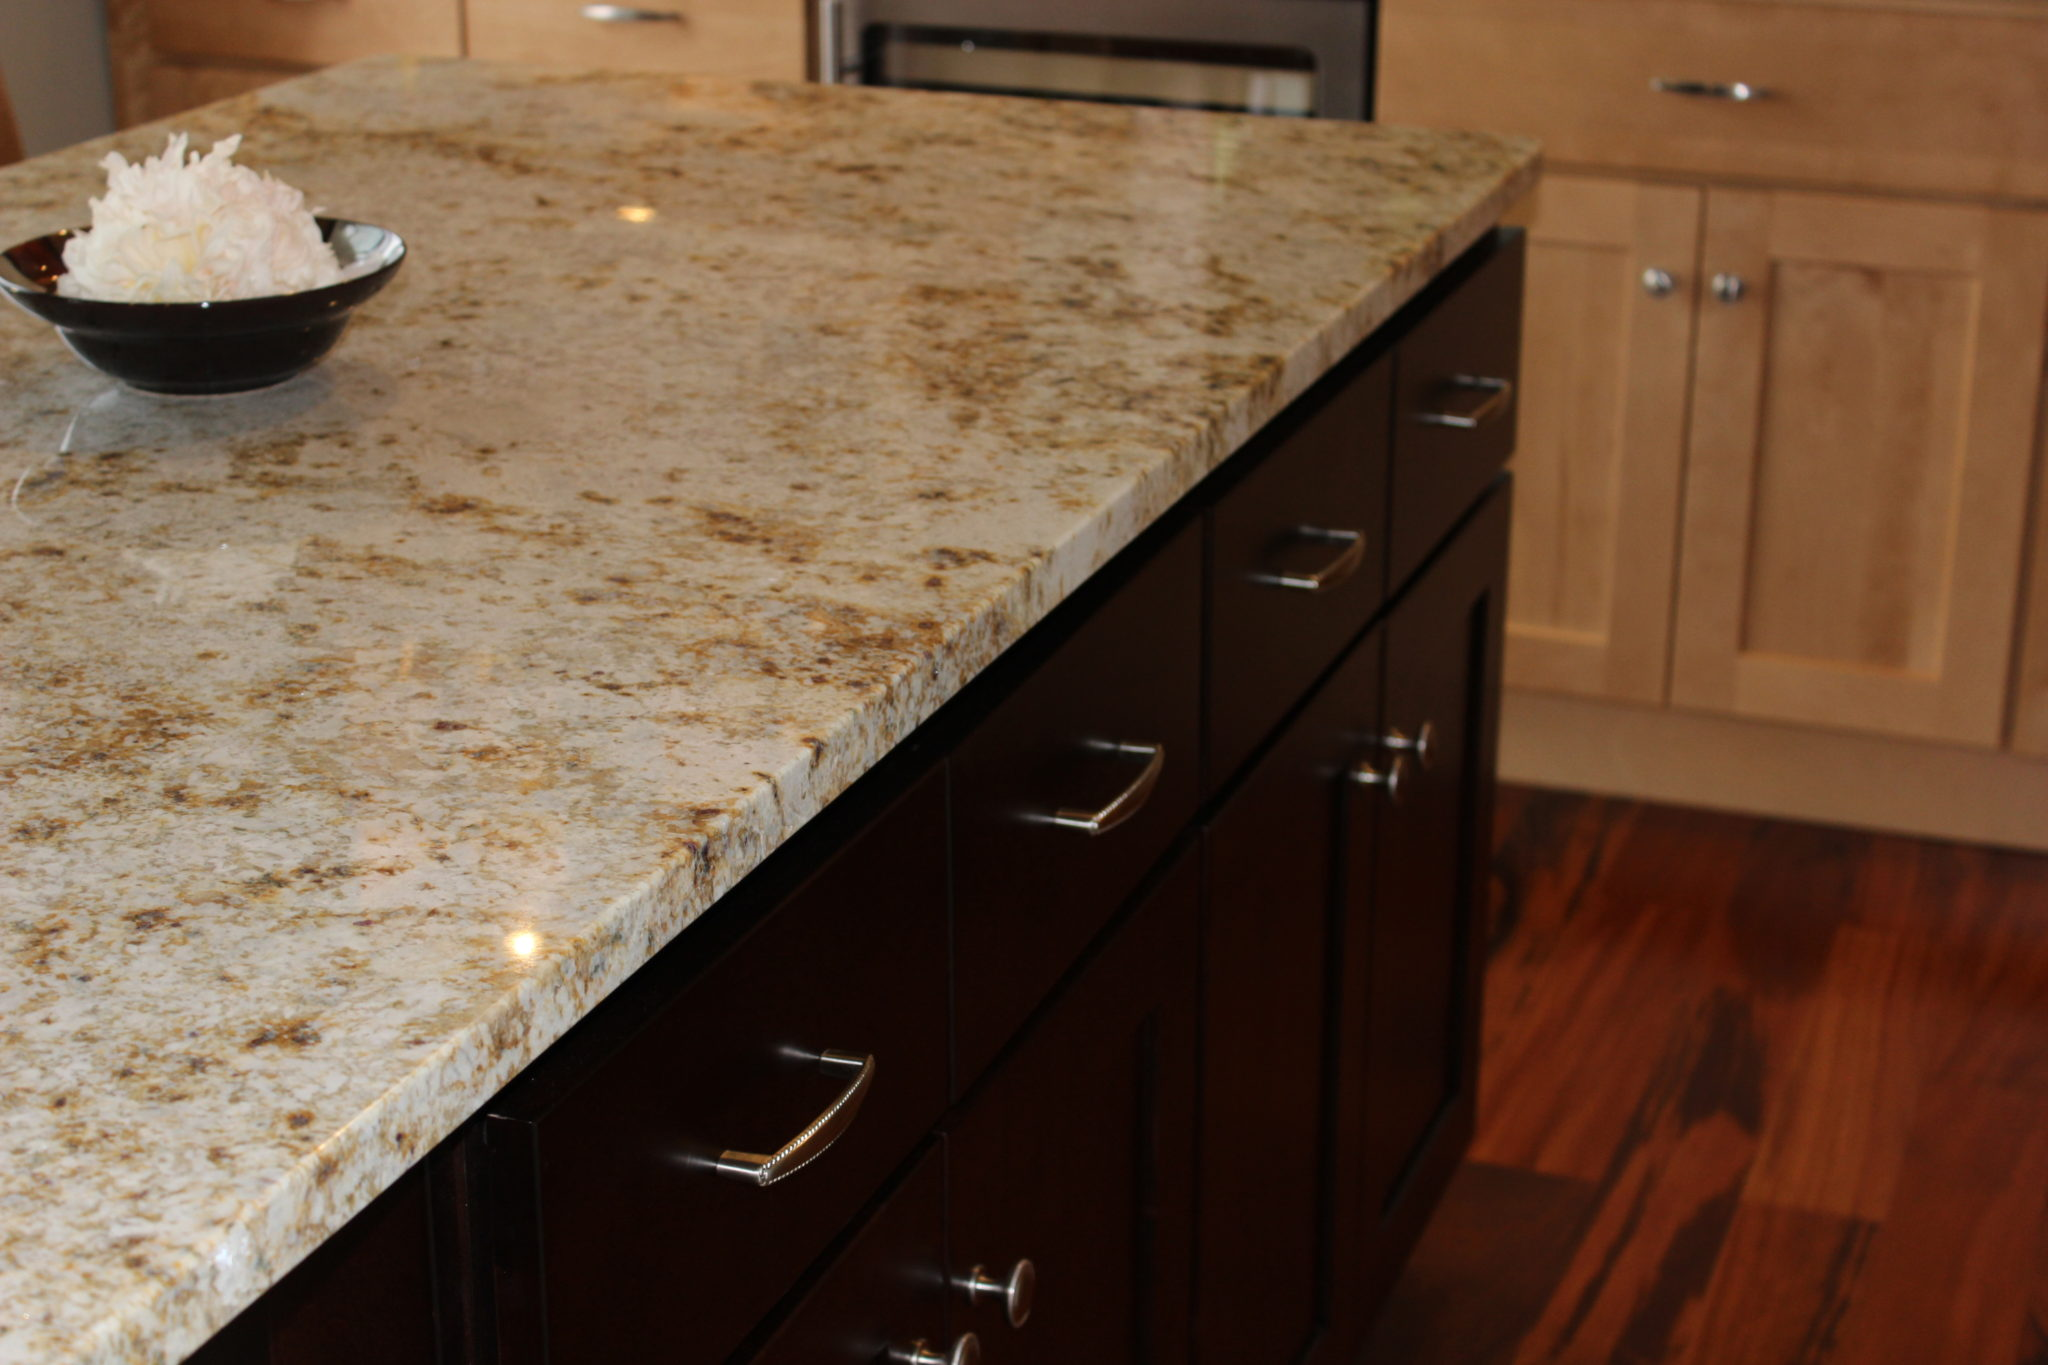 Granite Tile Kitchen Counter Denver Kitchen Countertops Denver Shower Doors Denver Granite